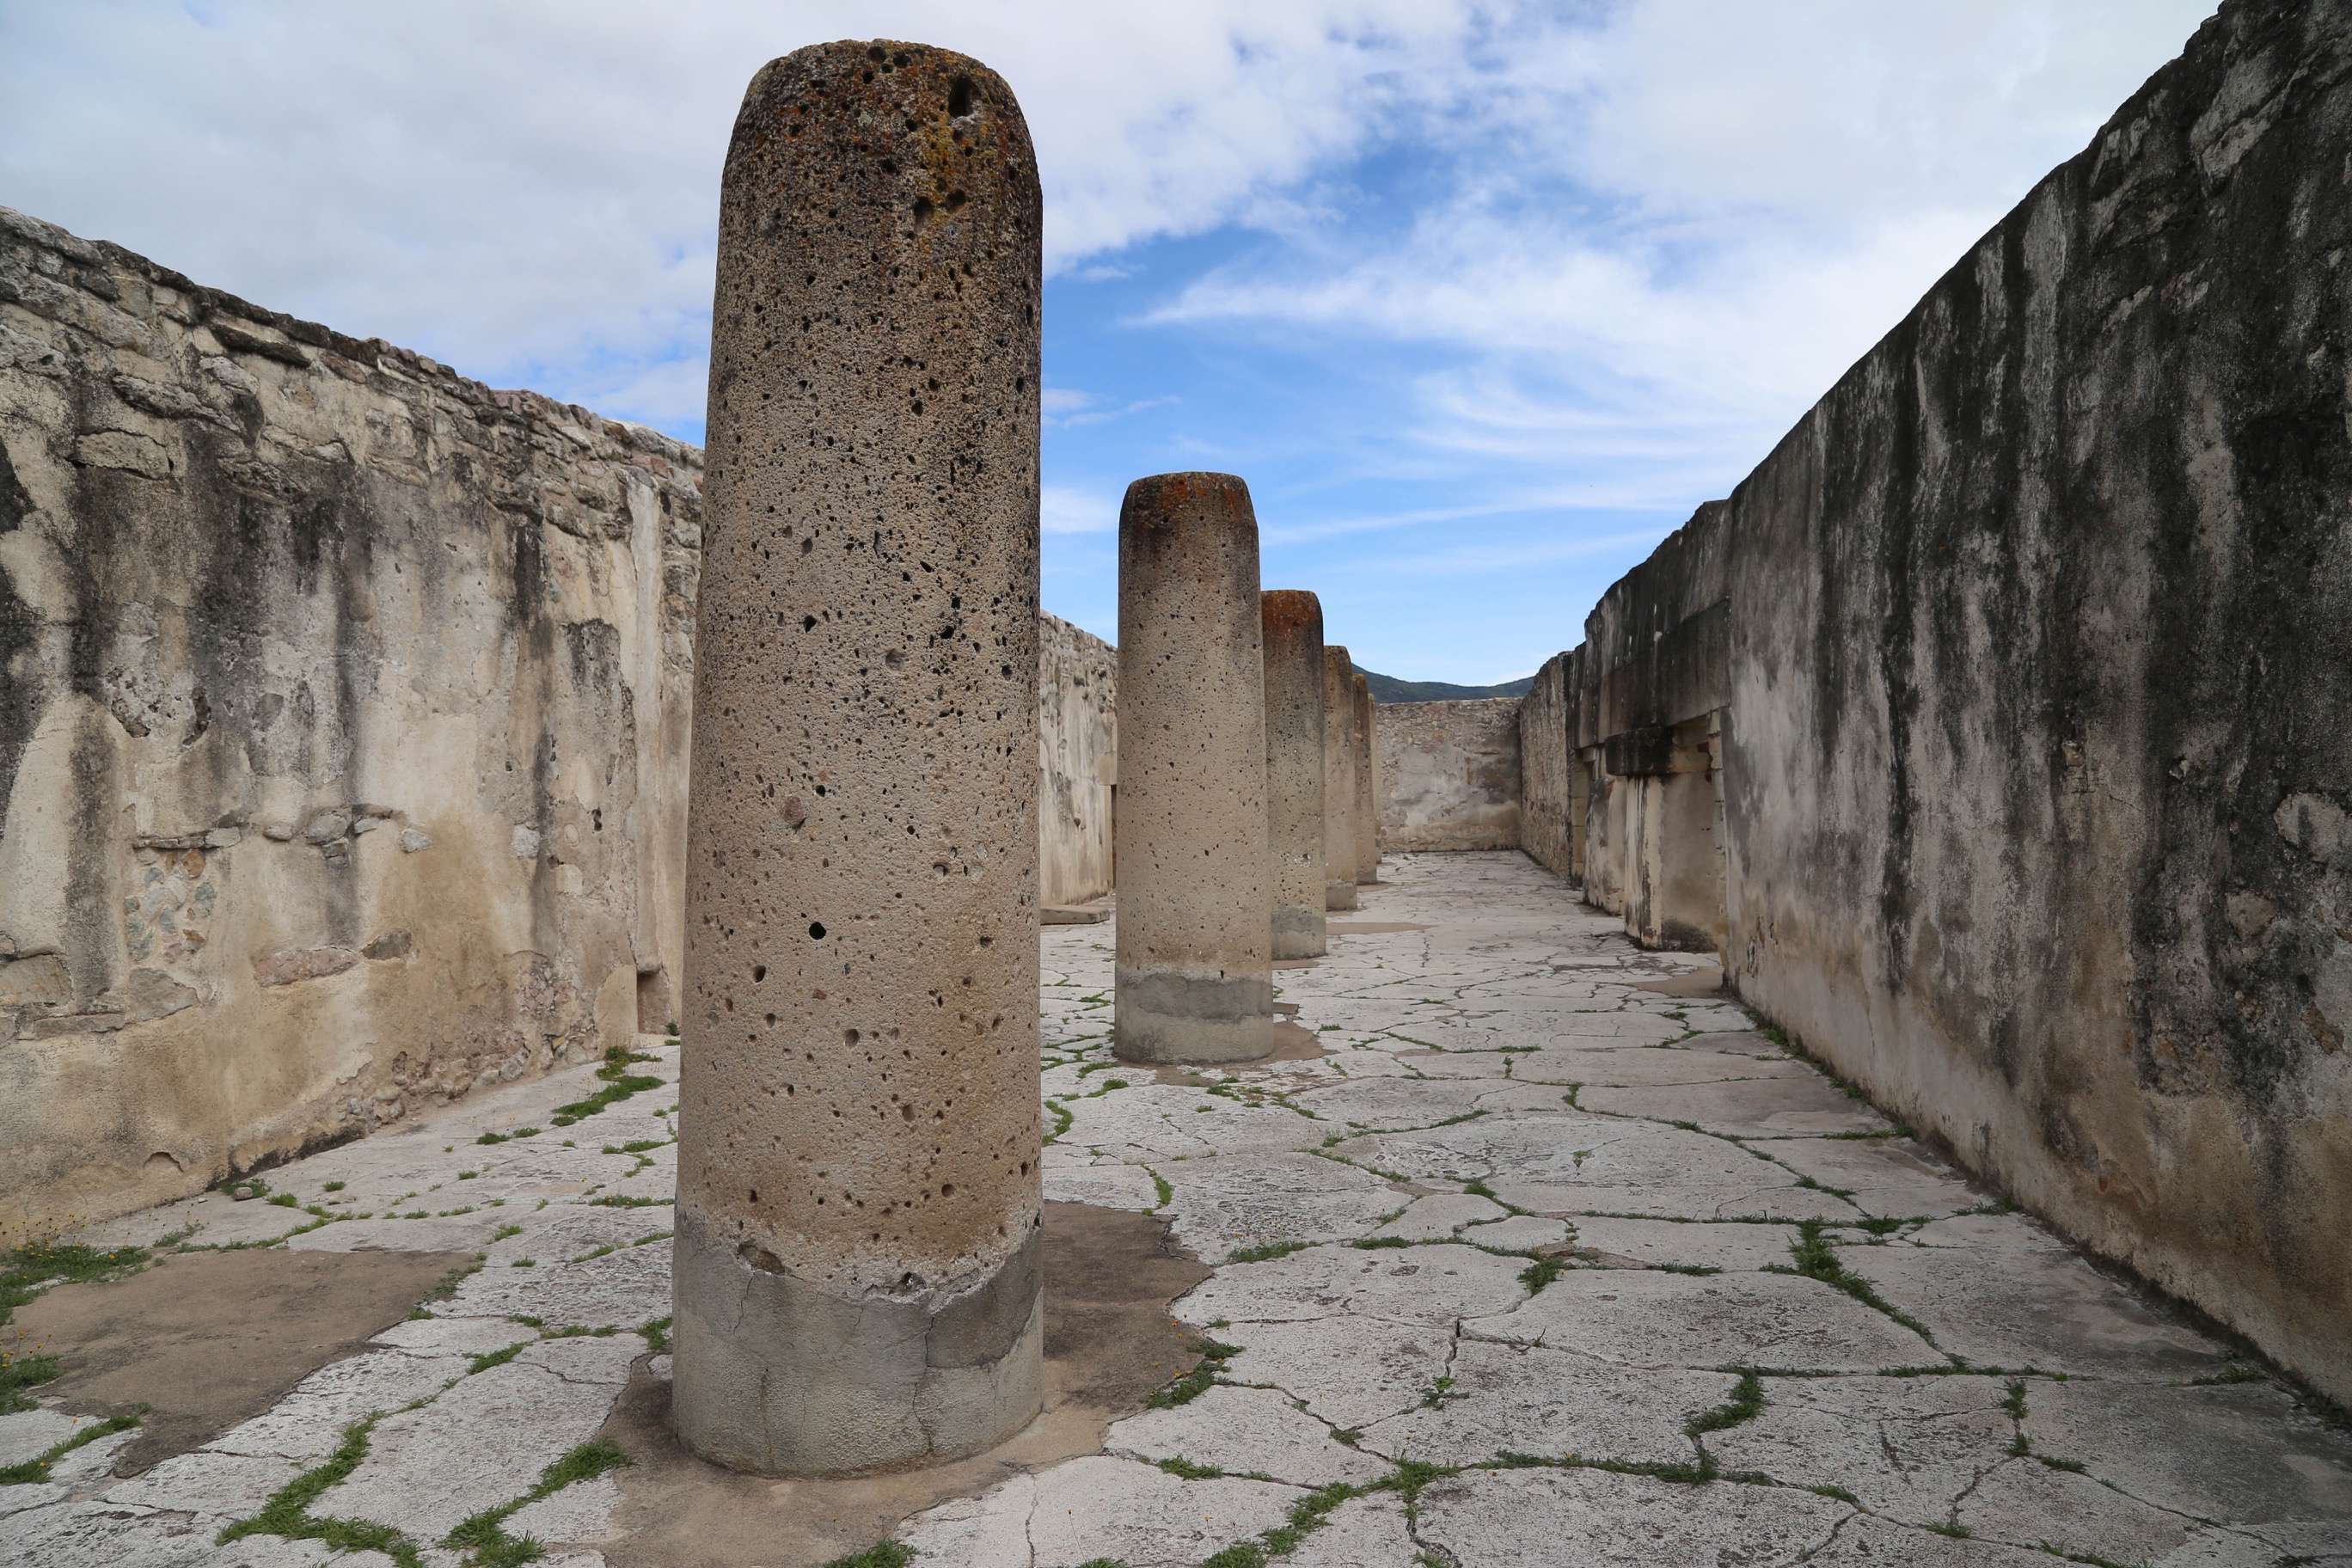 These stone pillars supported the roof and are carved out of volocanic tuff and are the finest examples of their kind in Mexico.